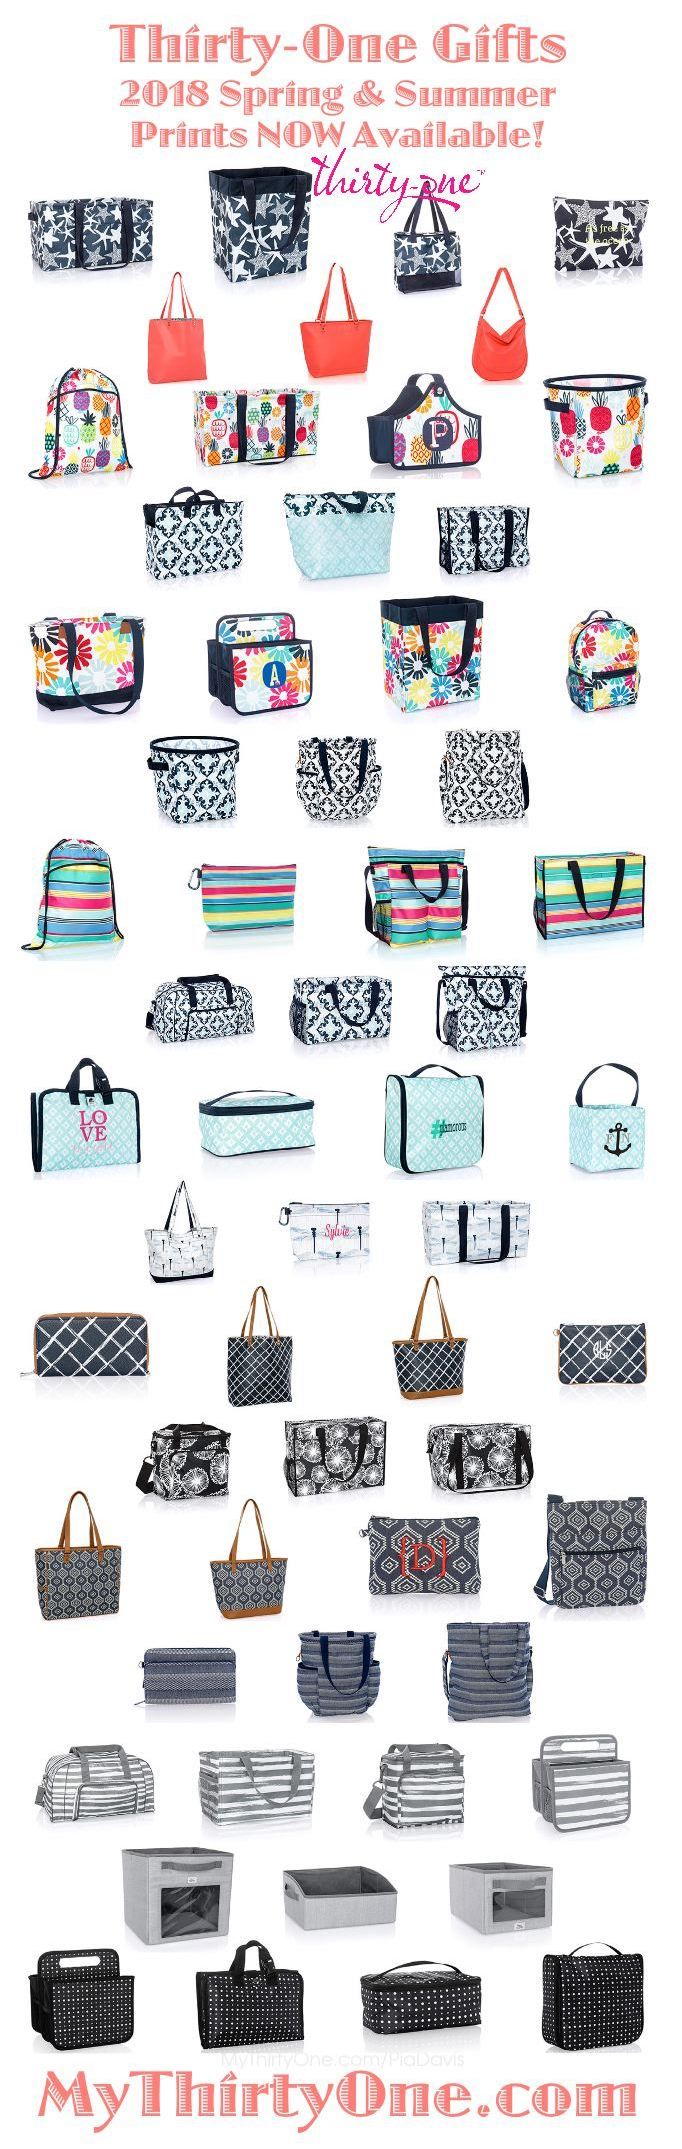 #31 Thirty-One Gifts NEW PRINTS for 2018 Spring and Summer. Check out Fab Flourish, Sparkling Squares, Dragonfly Daze, Navy Starfish Splash, Dotty Hexagon, Woven Stripe, Midnight Navy Pebble, Dash of Plaid Pebble that go along well with current colors. Find these prints and others at MyThirtyOne.Com/PiaDavis or find your consultant in the upper right corner of the website.